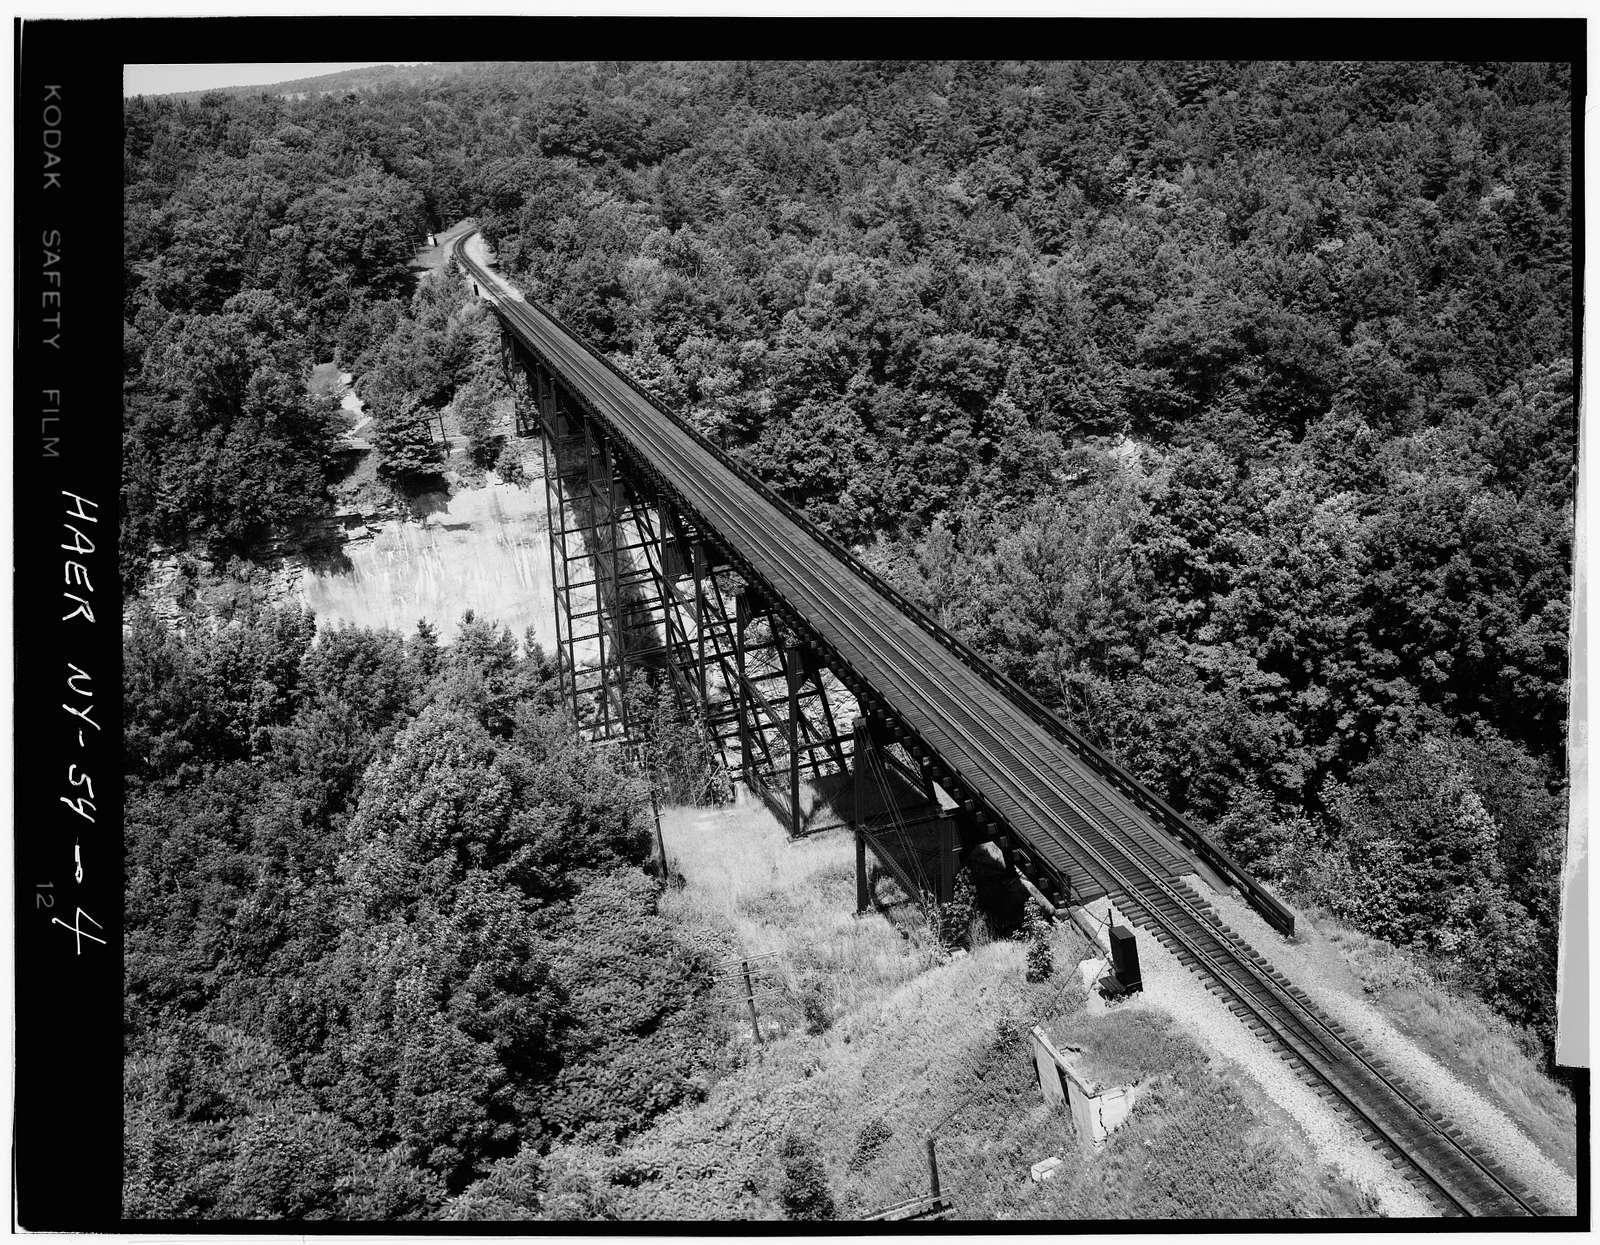 Erie Railway, Buffalo Division, Bridge 361.66, Genesee River, State Route 436, Portageville, Wyoming County, NY